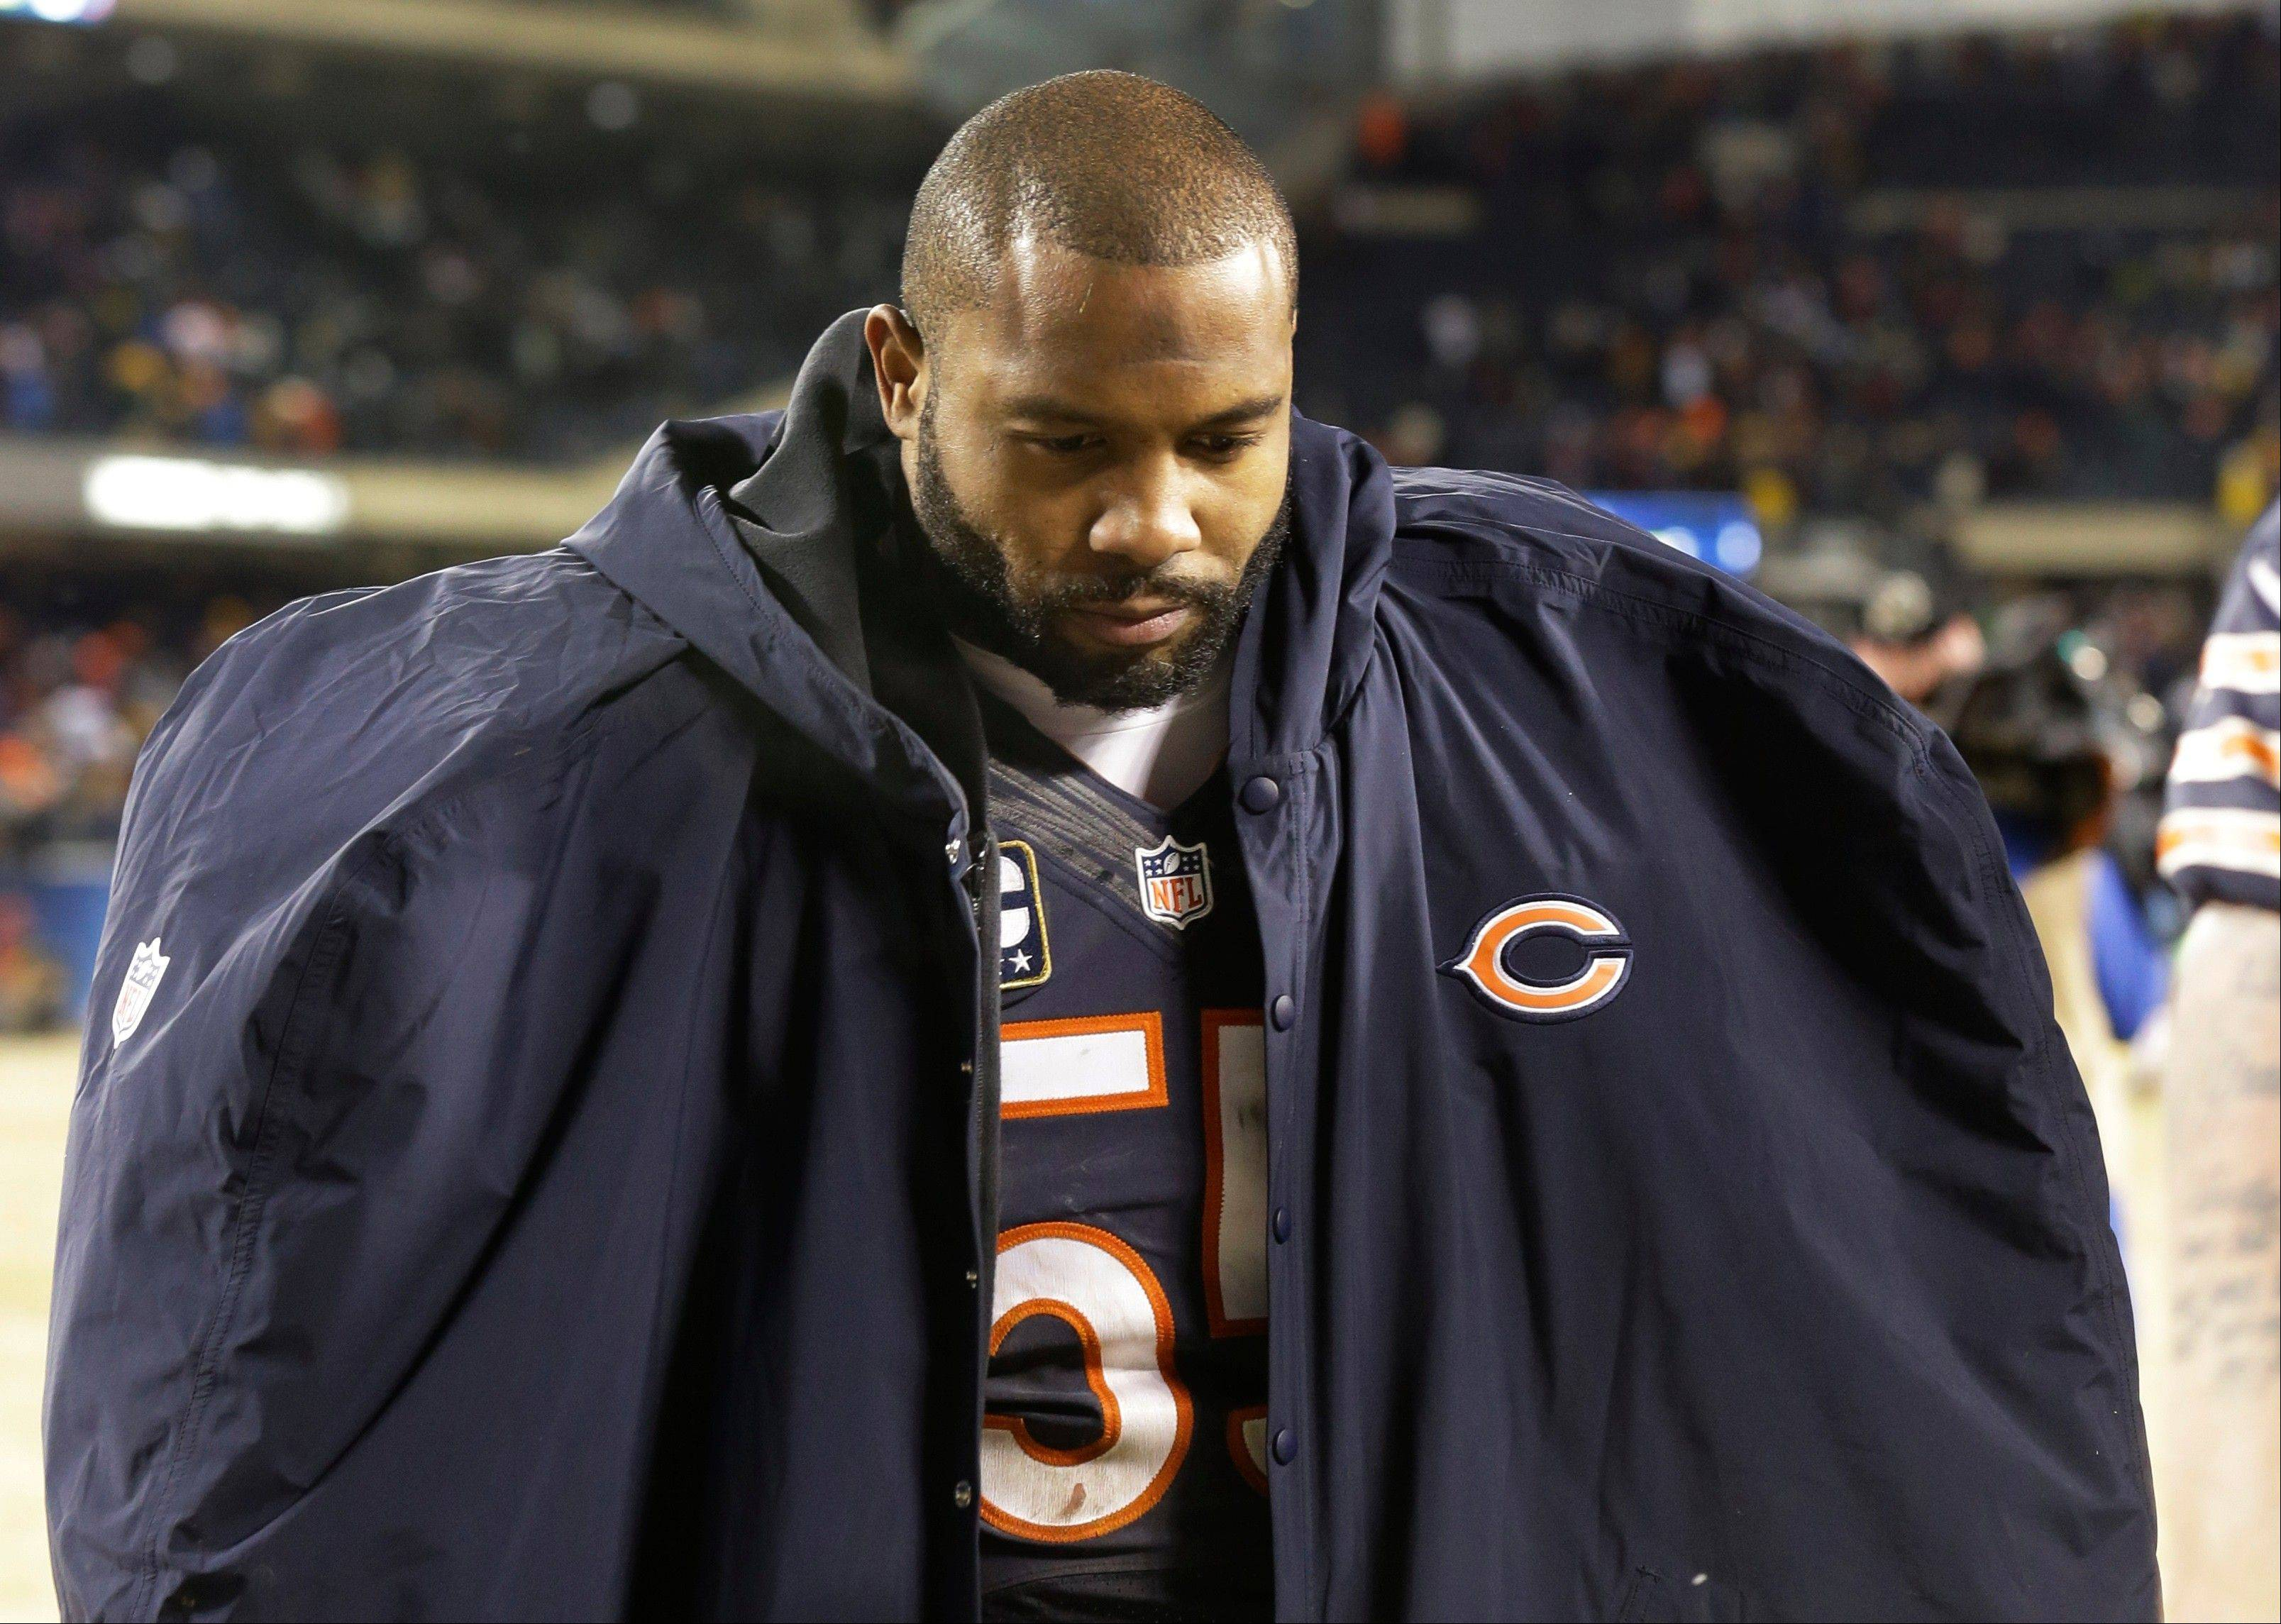 Bears linebacker Lance Briggs, who missed seven games to injury this season, will be back next season but the Bears have 28 free agents without contracts.